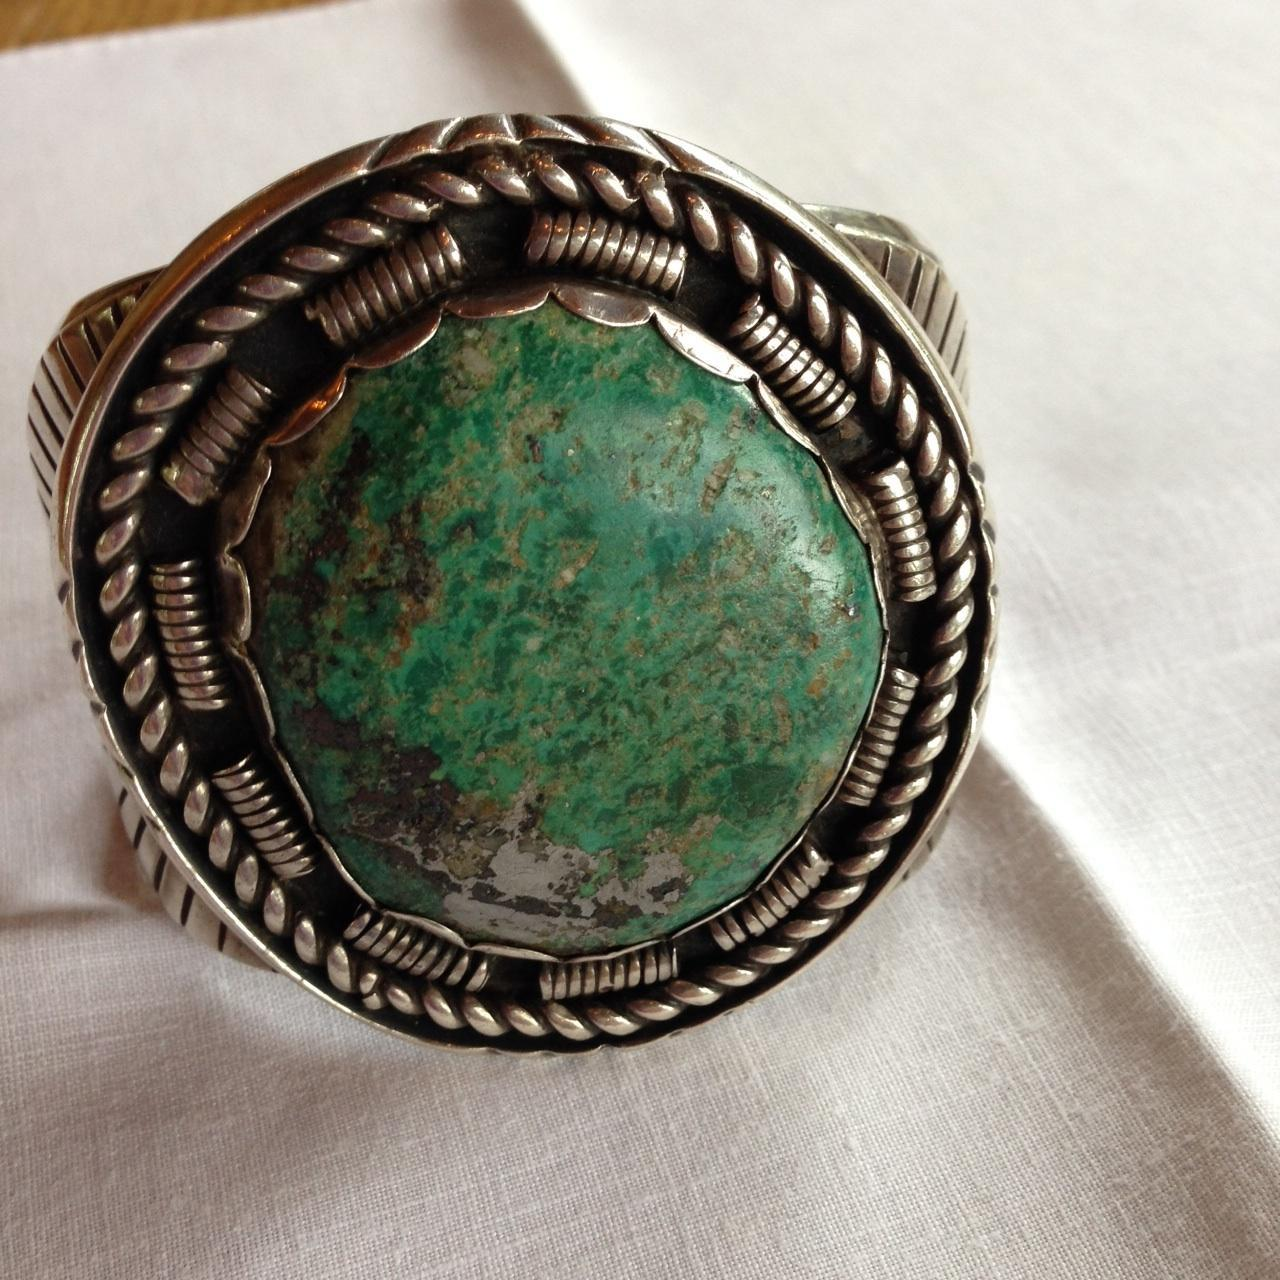 Huge Navajo Royston Turquoise Bracelet Signed 141.4 Grams!